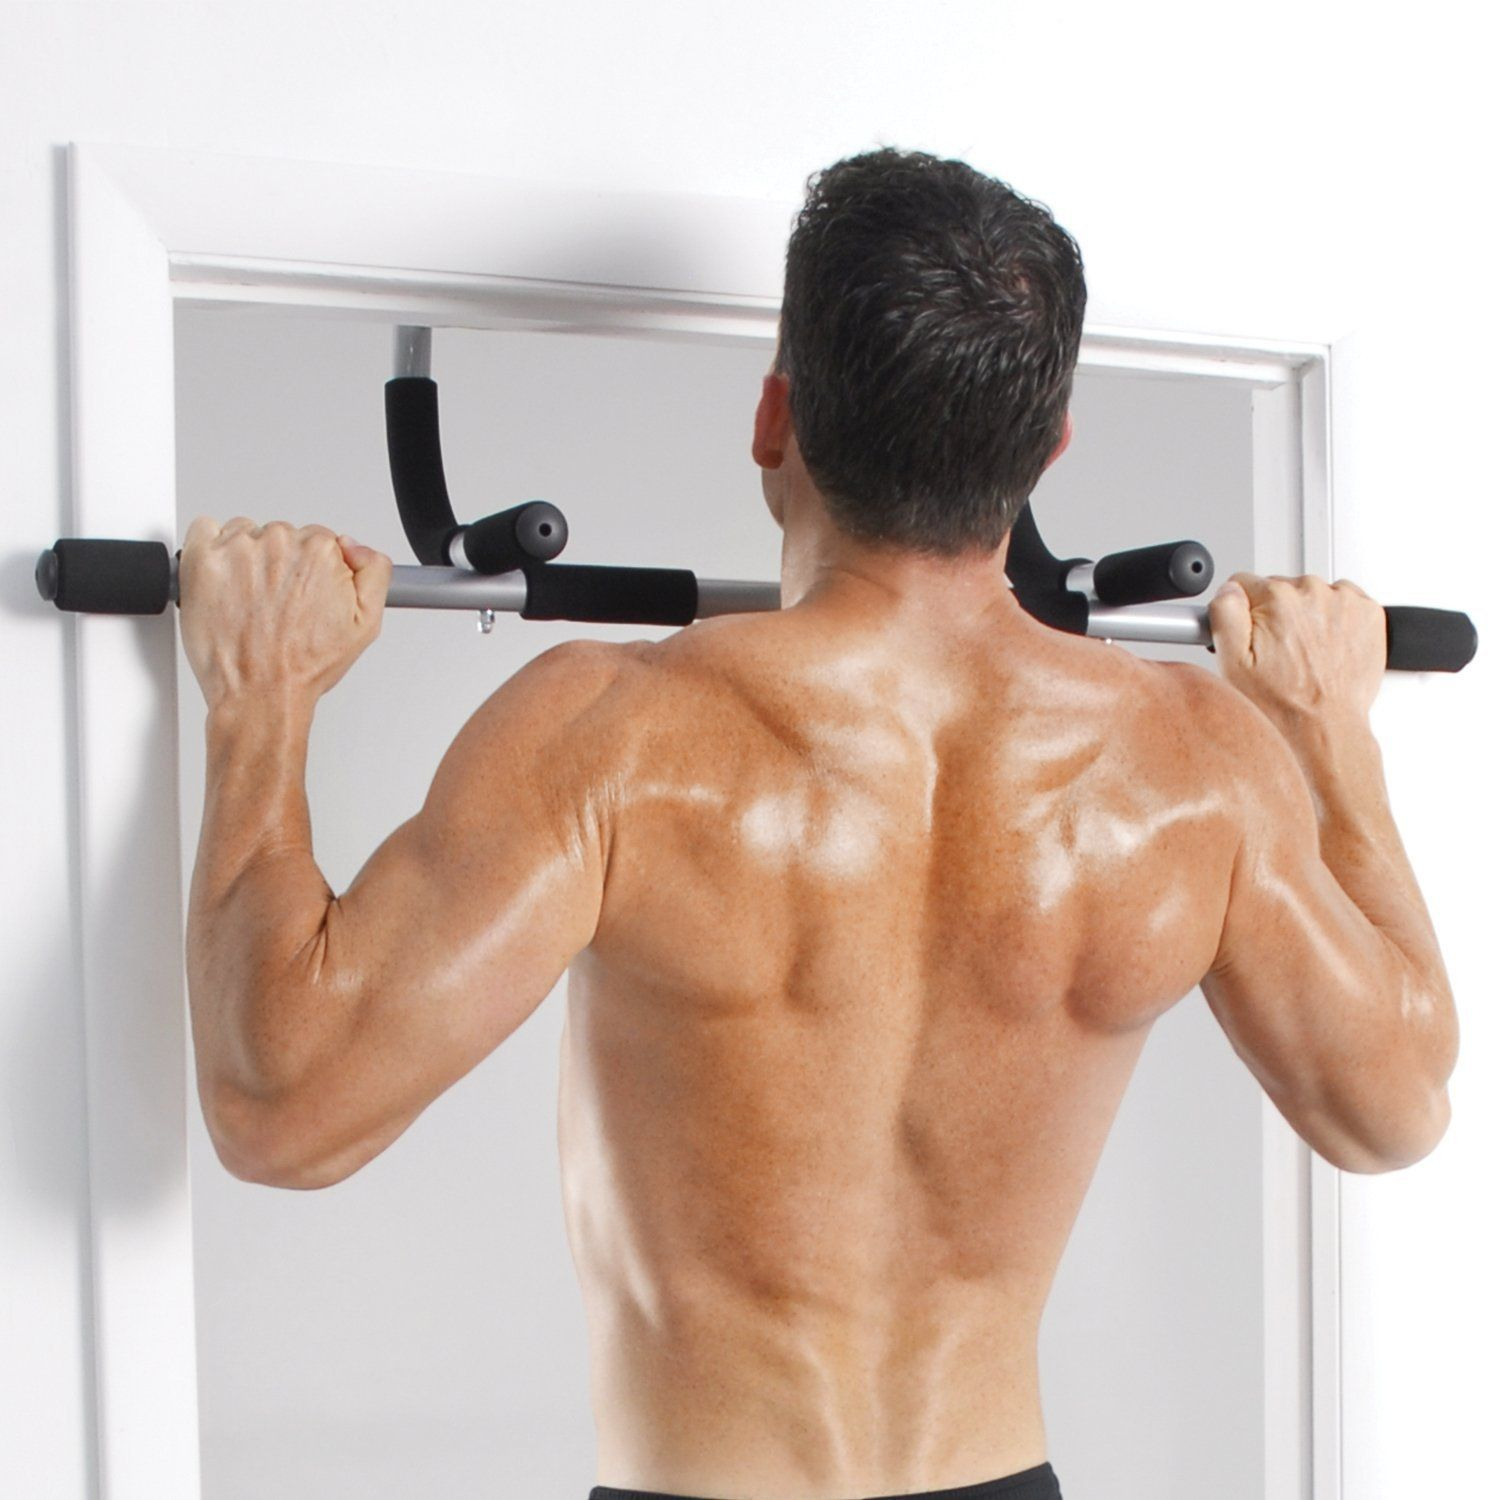 Health & Fitness : Abdominal Exercises With Pull Up Bars